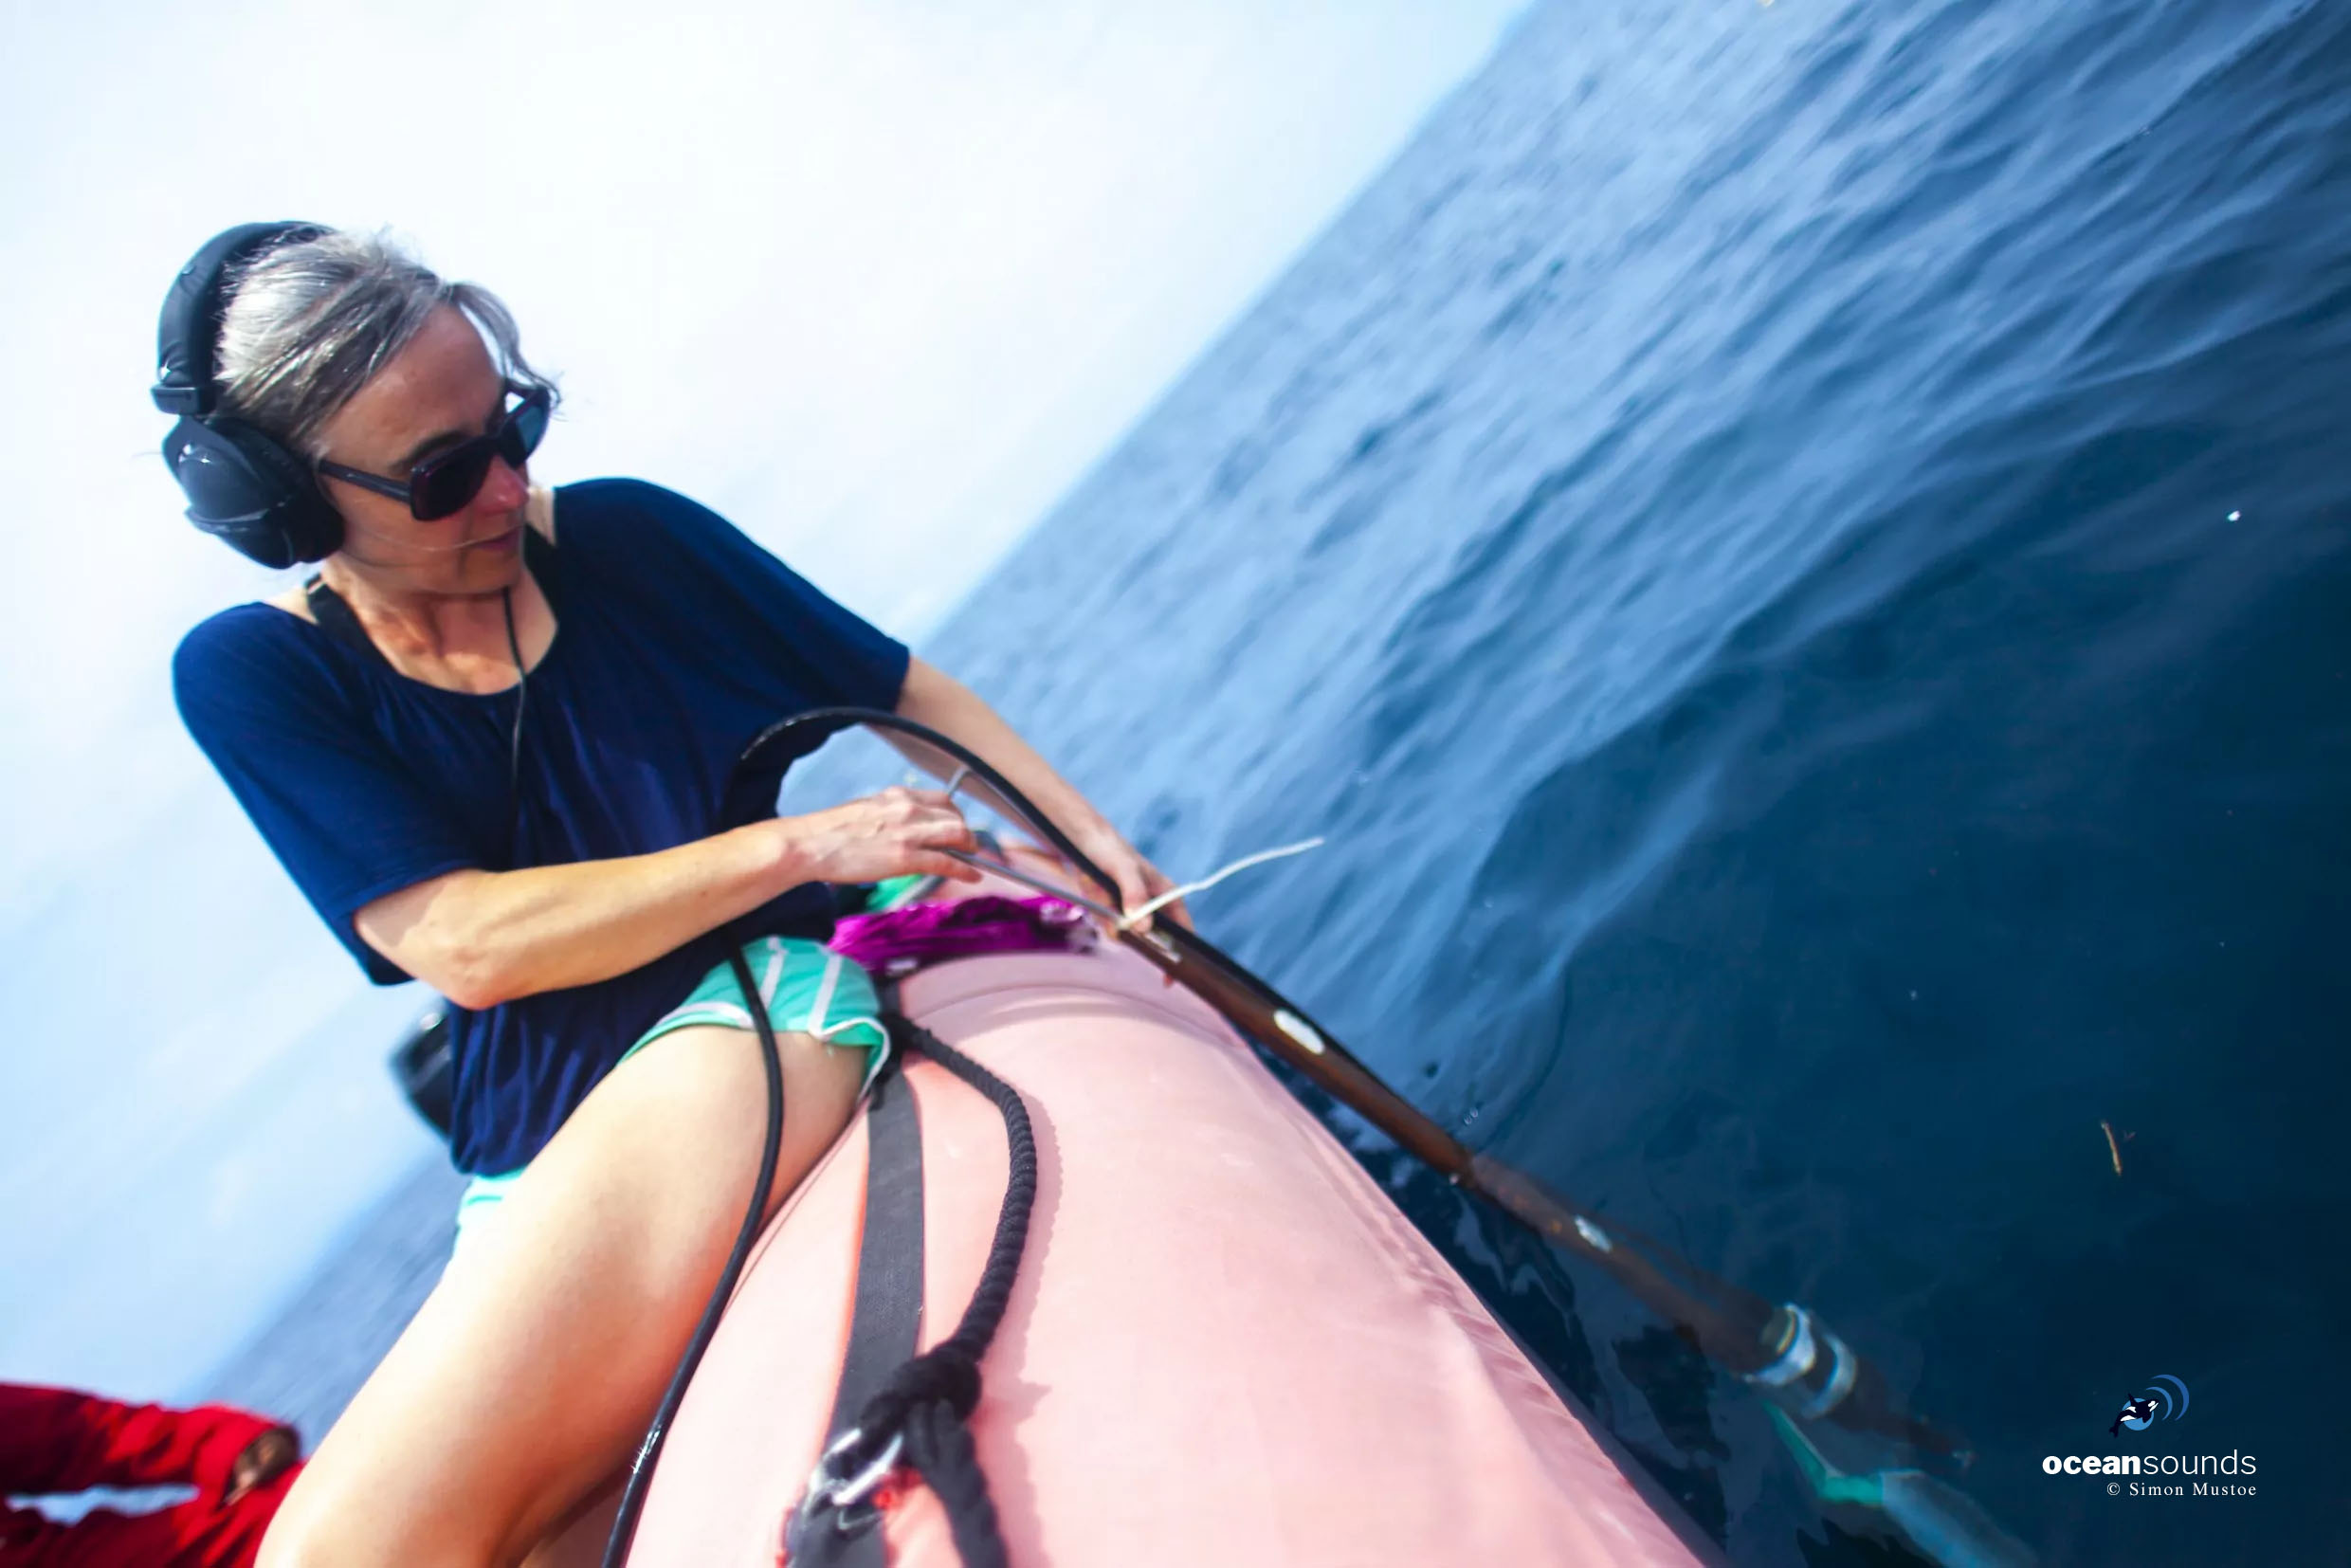 Heike Vester listens for whales using a hydrophone. A metal paddle fitted on one side enables her to identify the direction the sound is coming from.